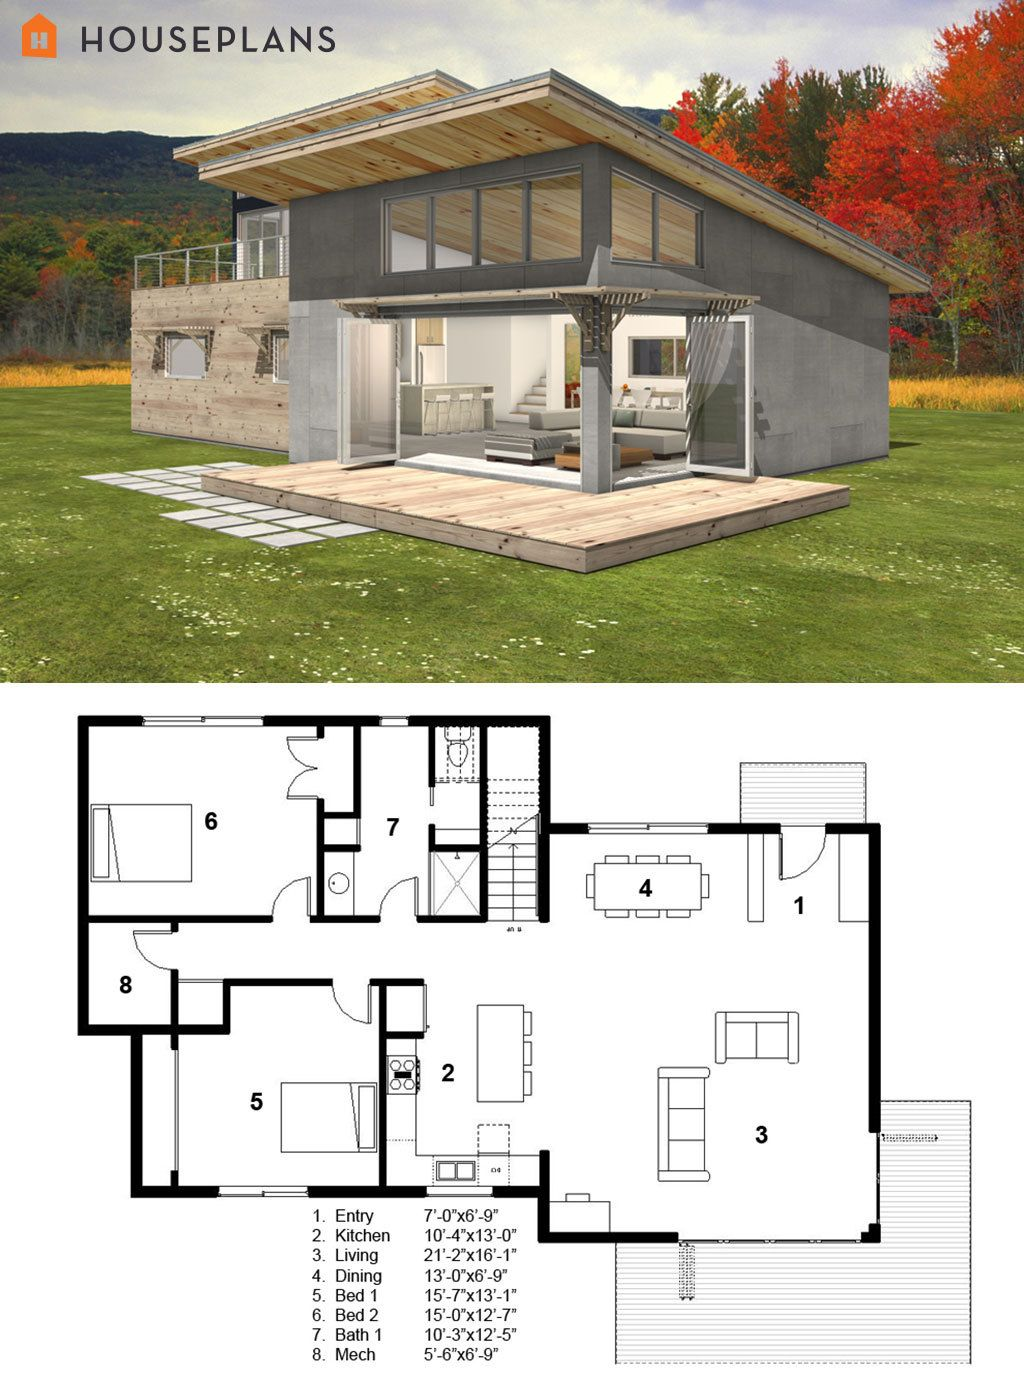 Small modern cabin house plan by freegreen energy for Modern tiny house plans